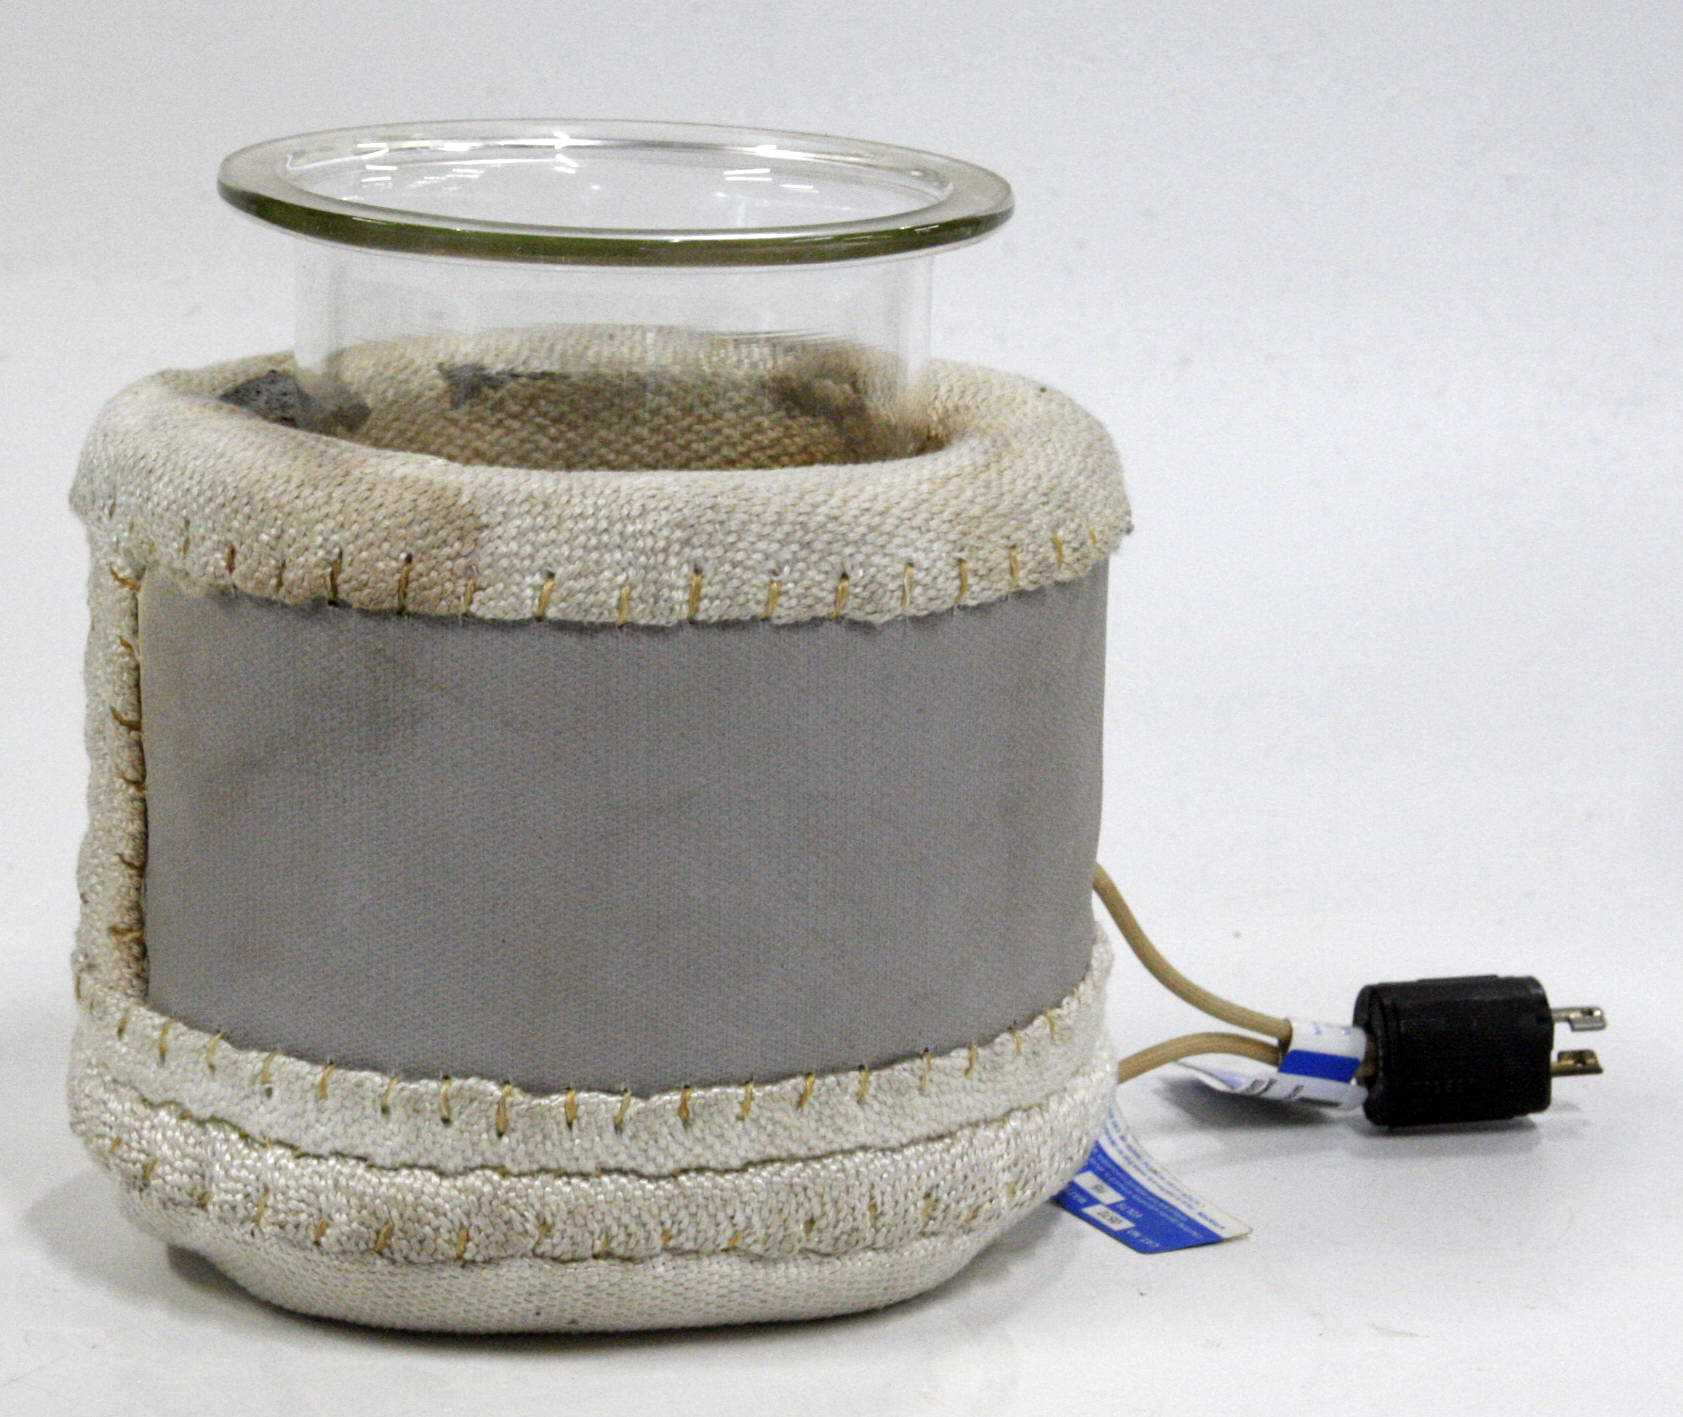 Glas-Col 100A-O572 reaction flask heating mantle - 2